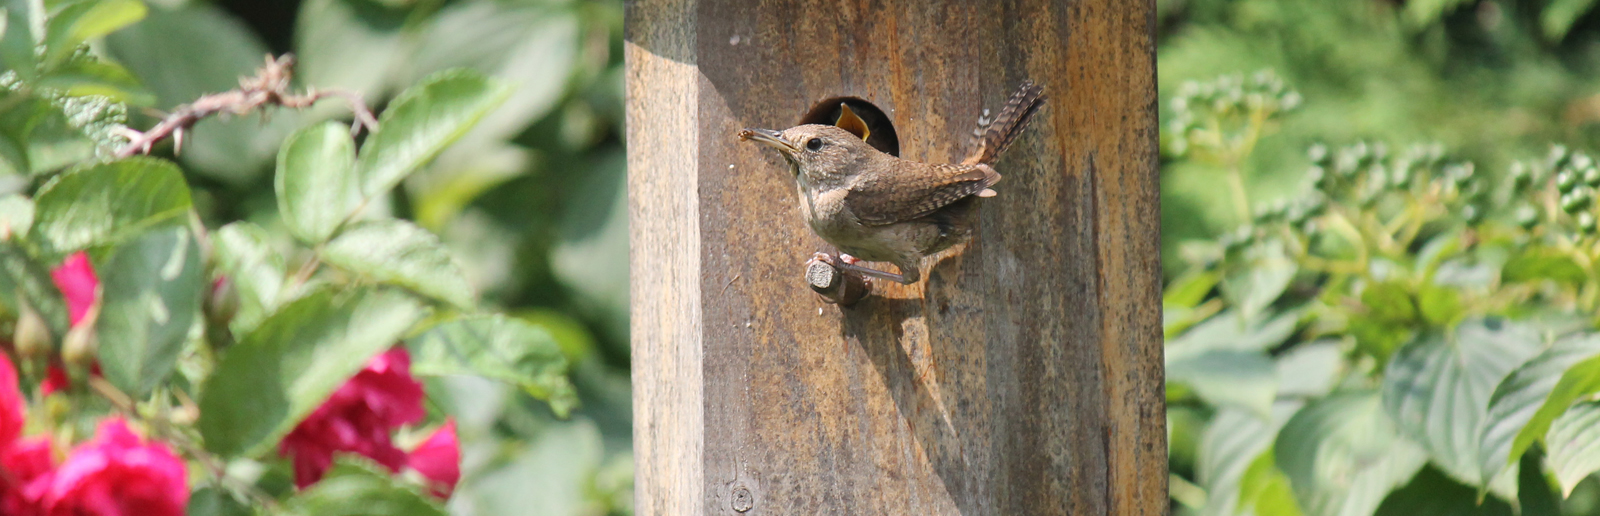 Hexagonal Wren Birdhouse